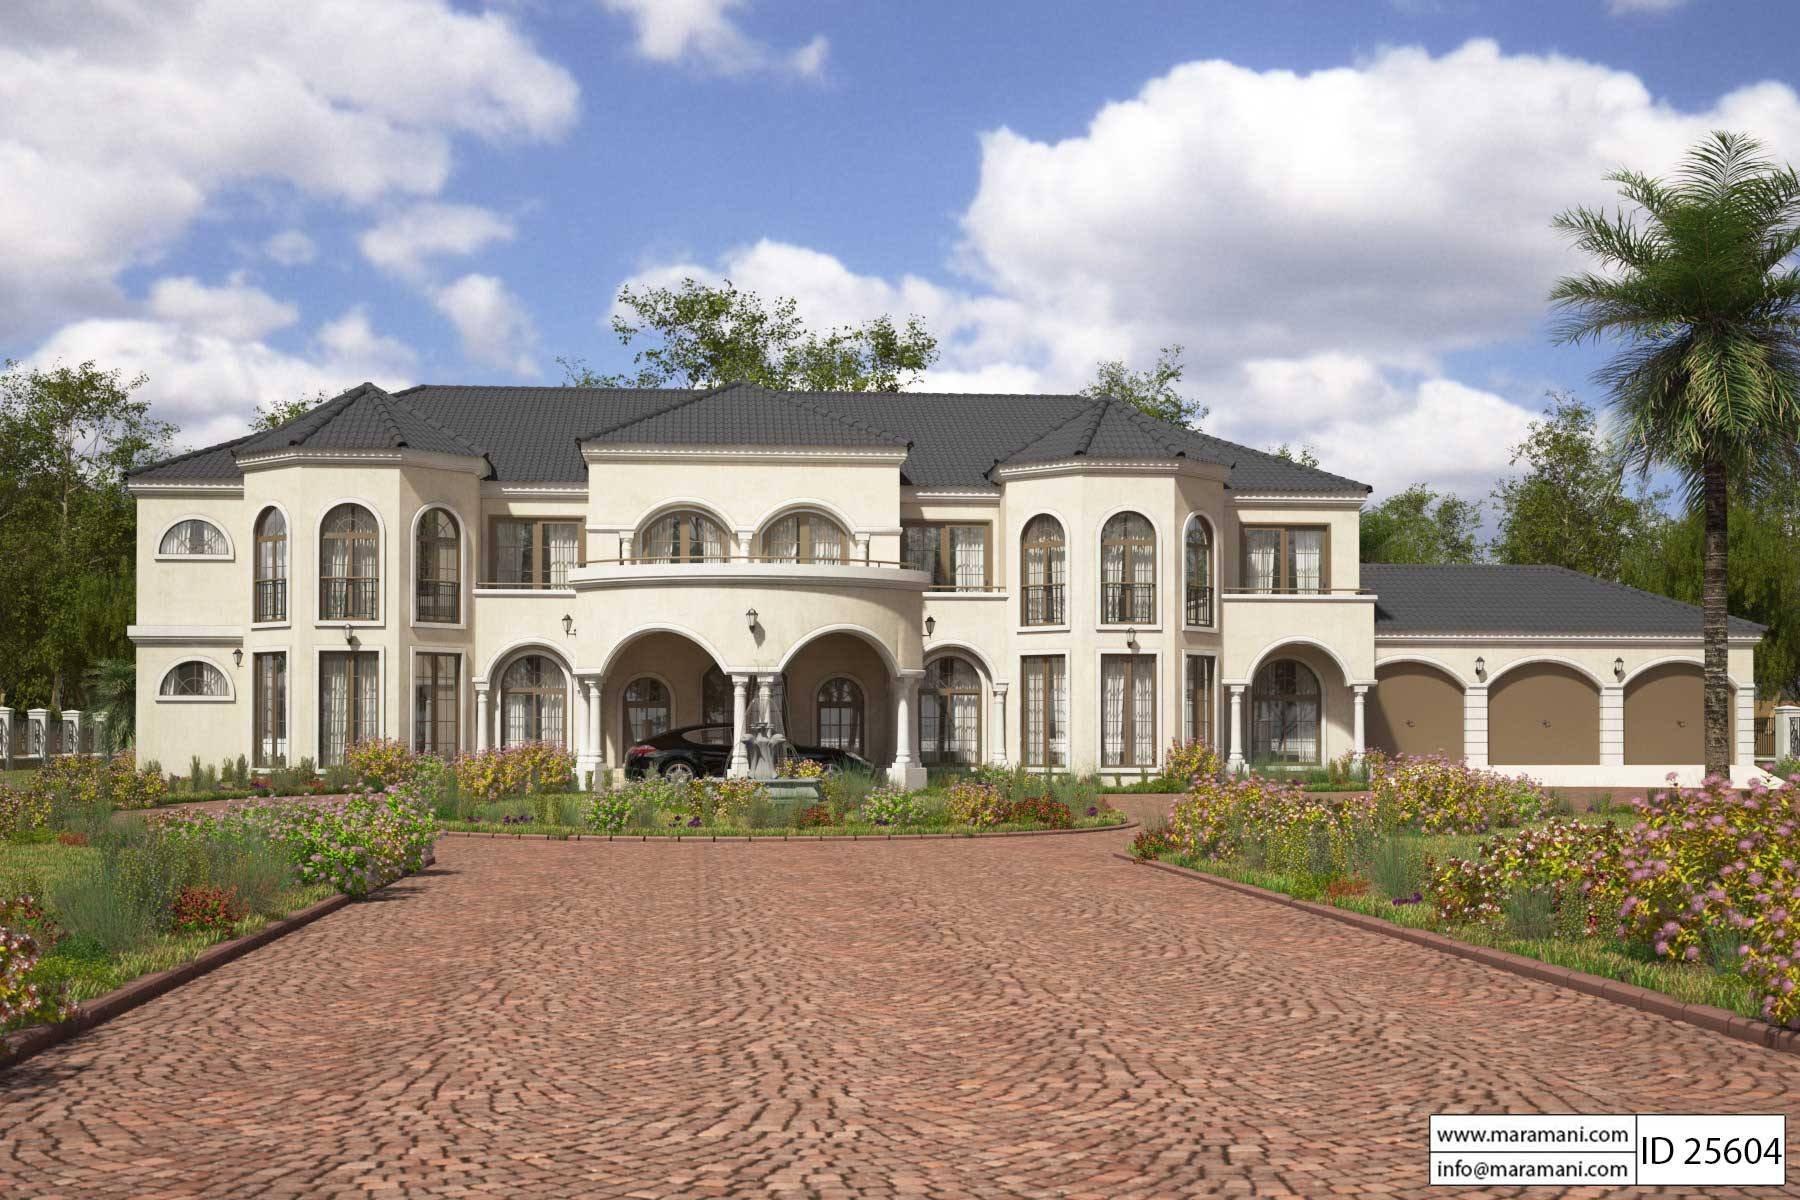 5 Bedroom House Design - ID 25604 - House Designs by Maramani